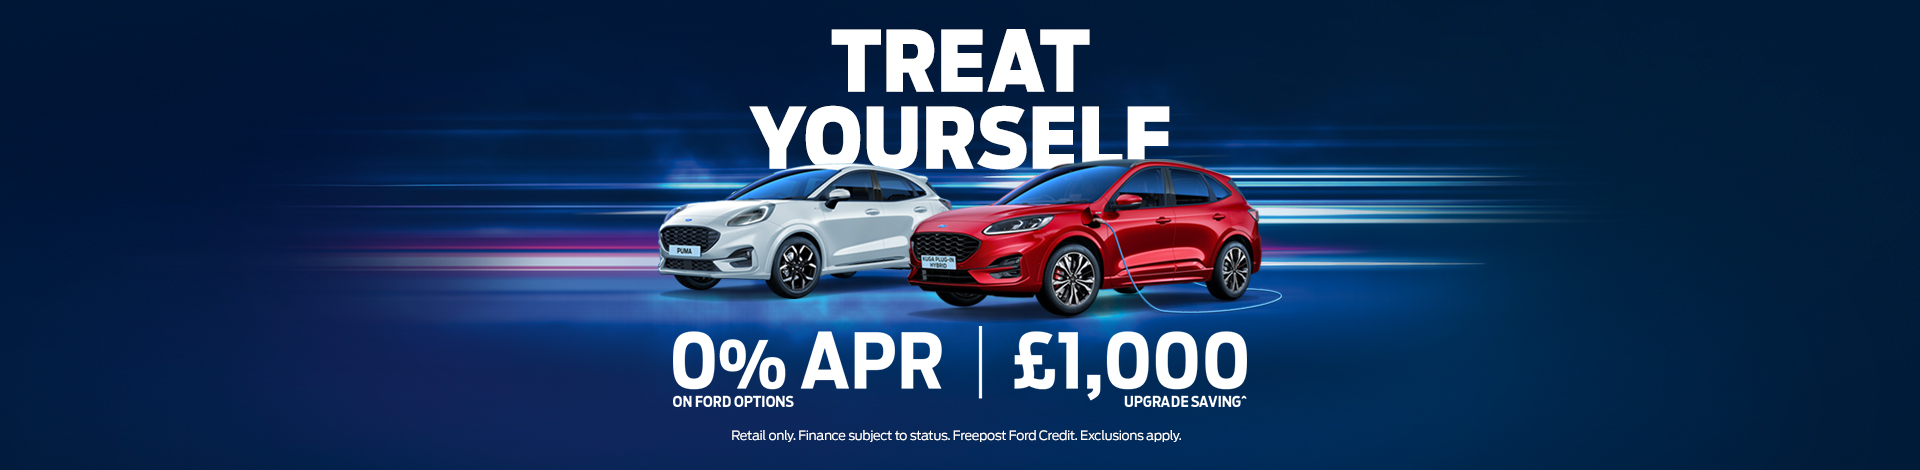 Ford Q4 Treat Yourself